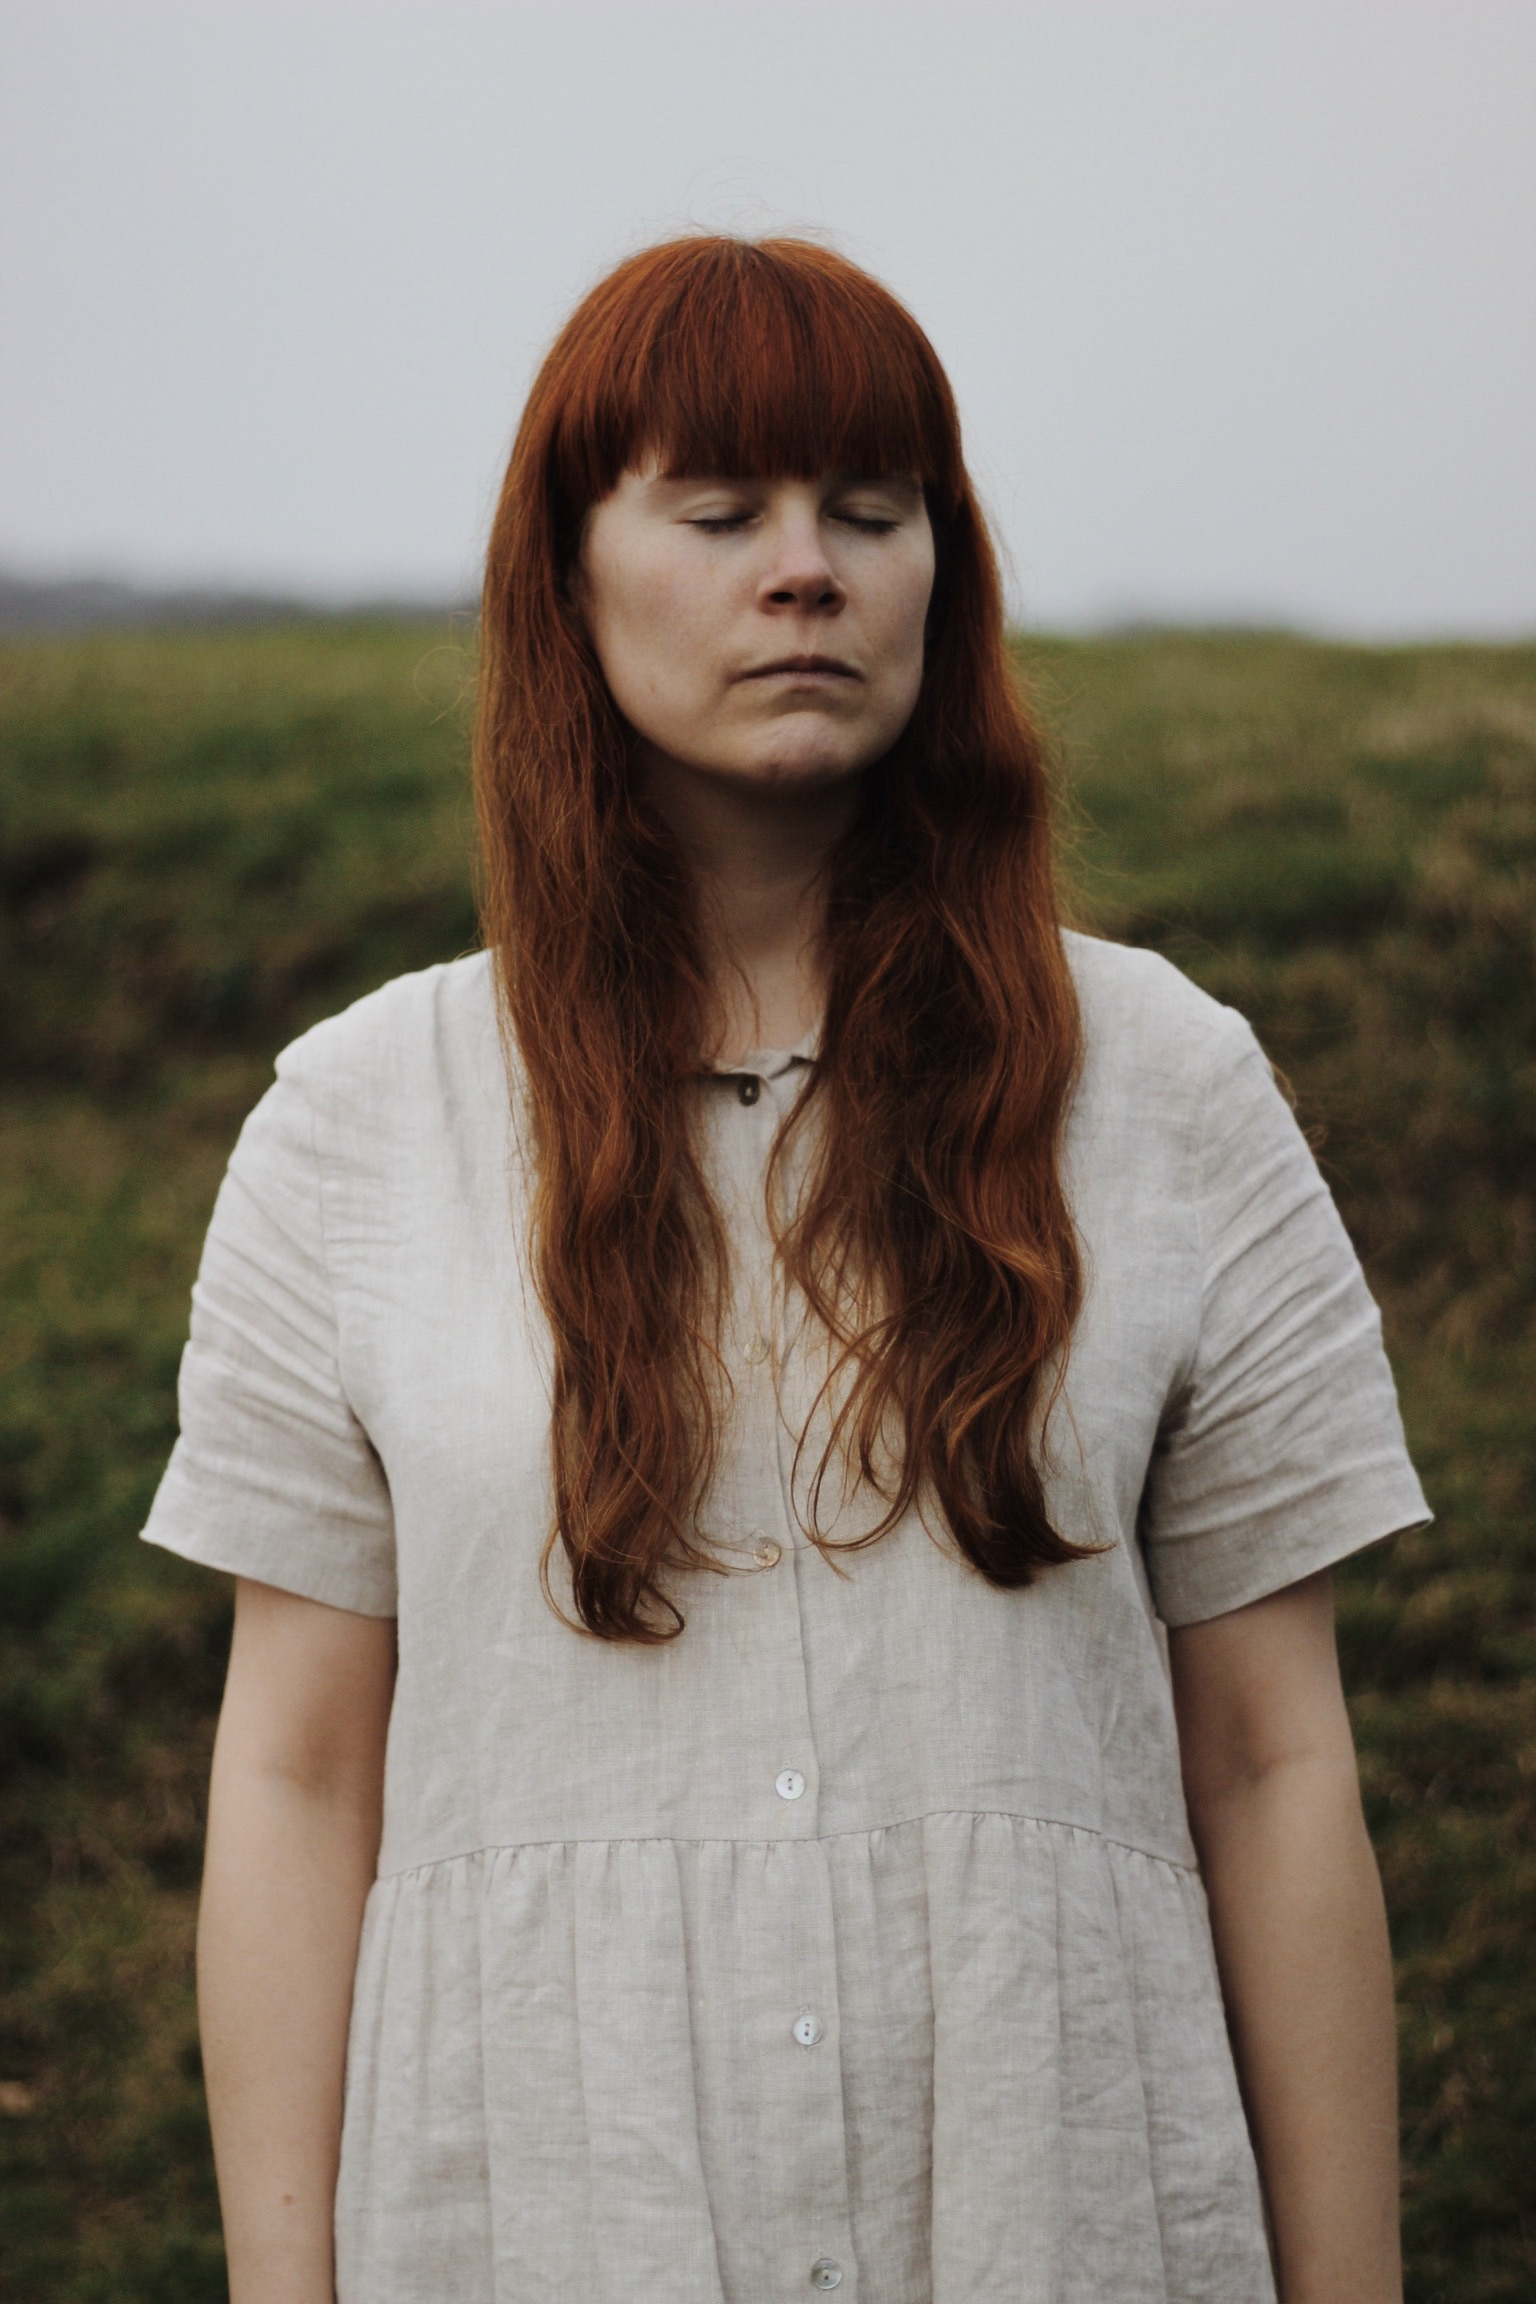 Red haired girl in a linen dress